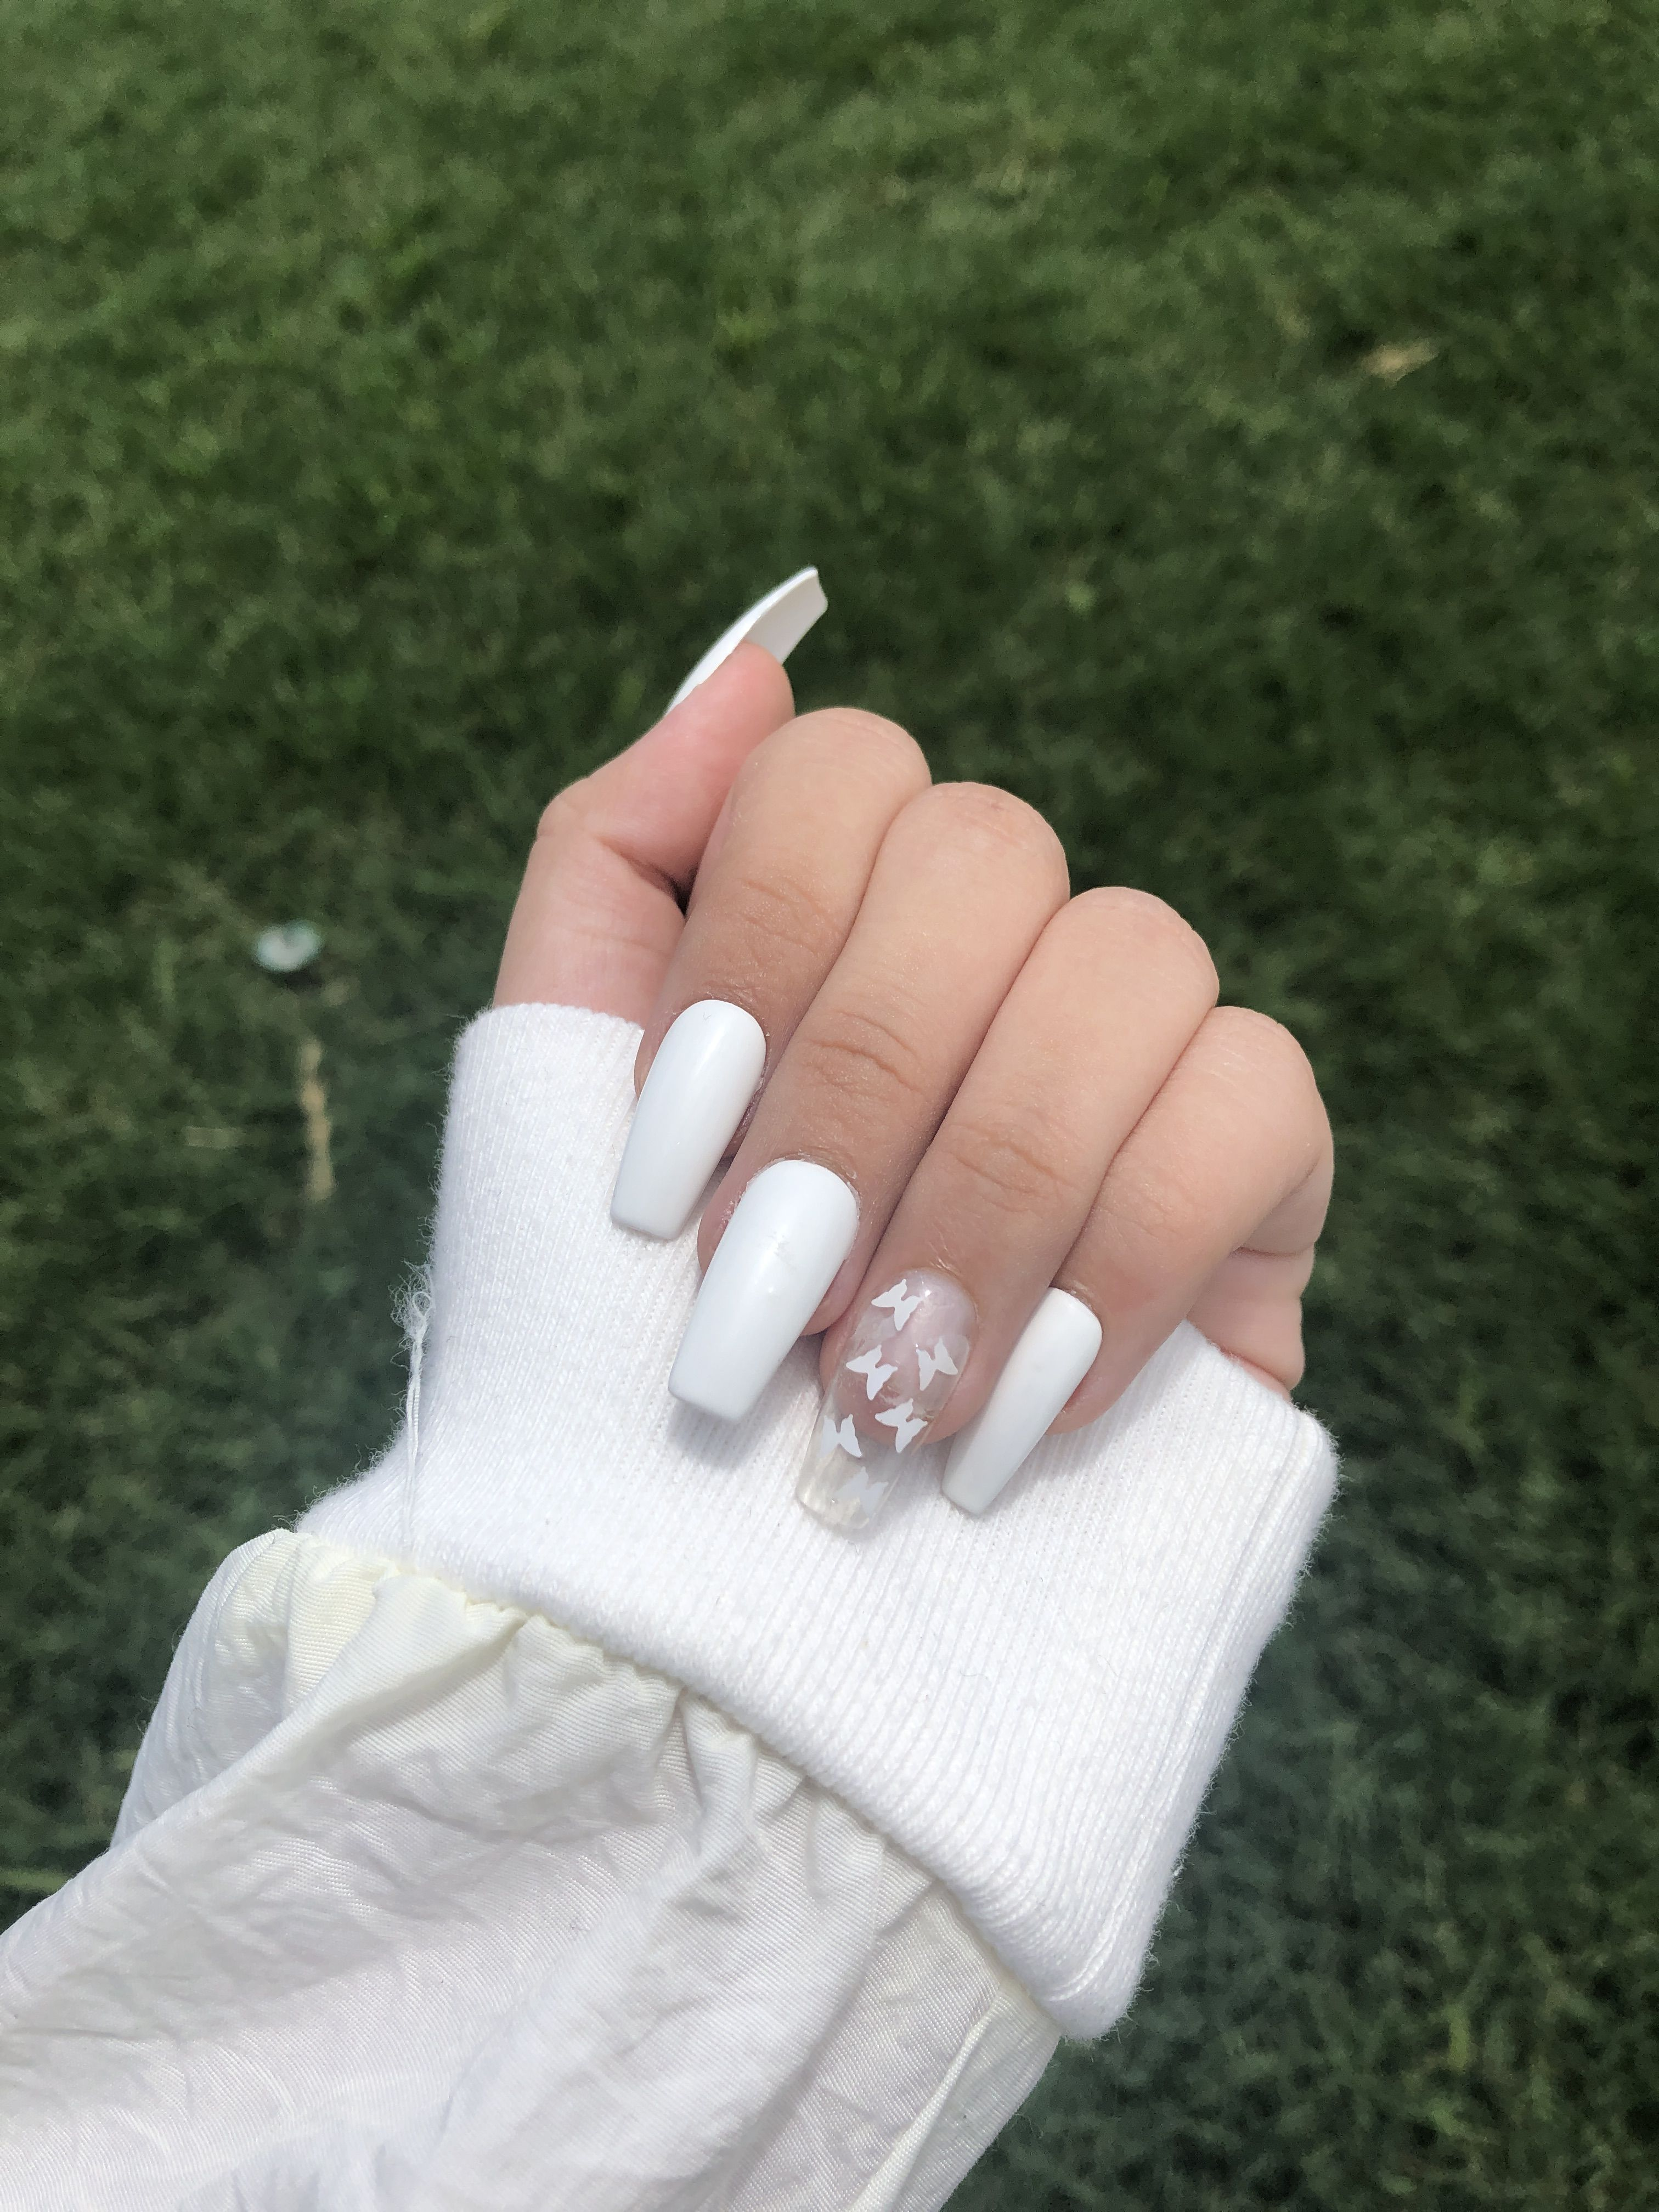 Butterfly Nails White Nails Press On Nails Birthday Gift Idea In 2020 Acrylic Nails Coffin Short Coffin Shape Nails Pink Acrylic Nails